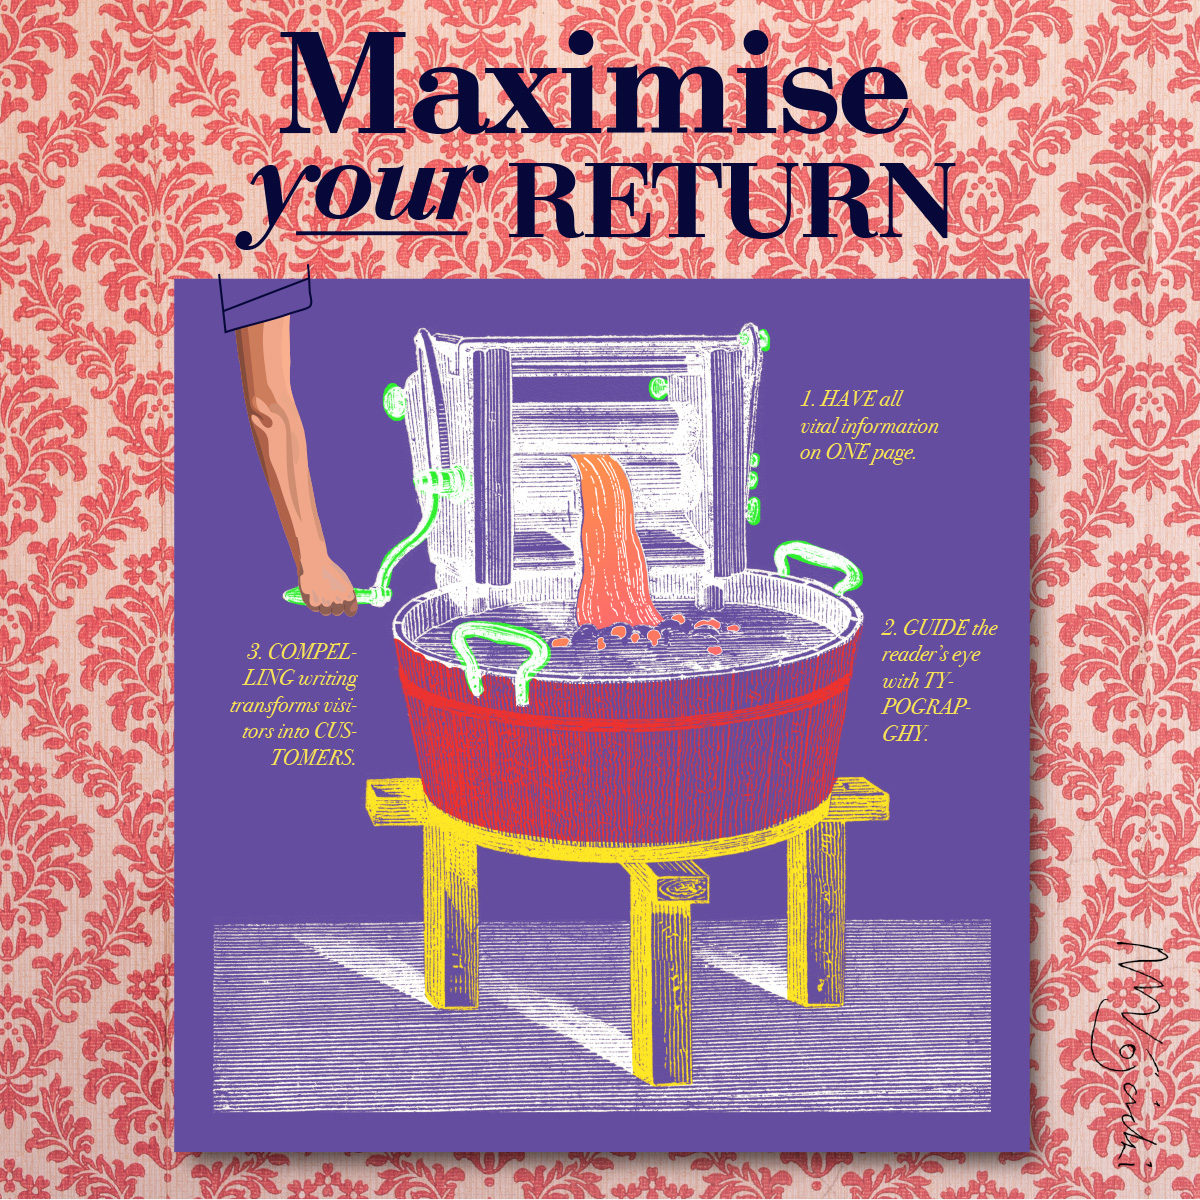 Maximise your return: Three tips to extract the most value from your online brand